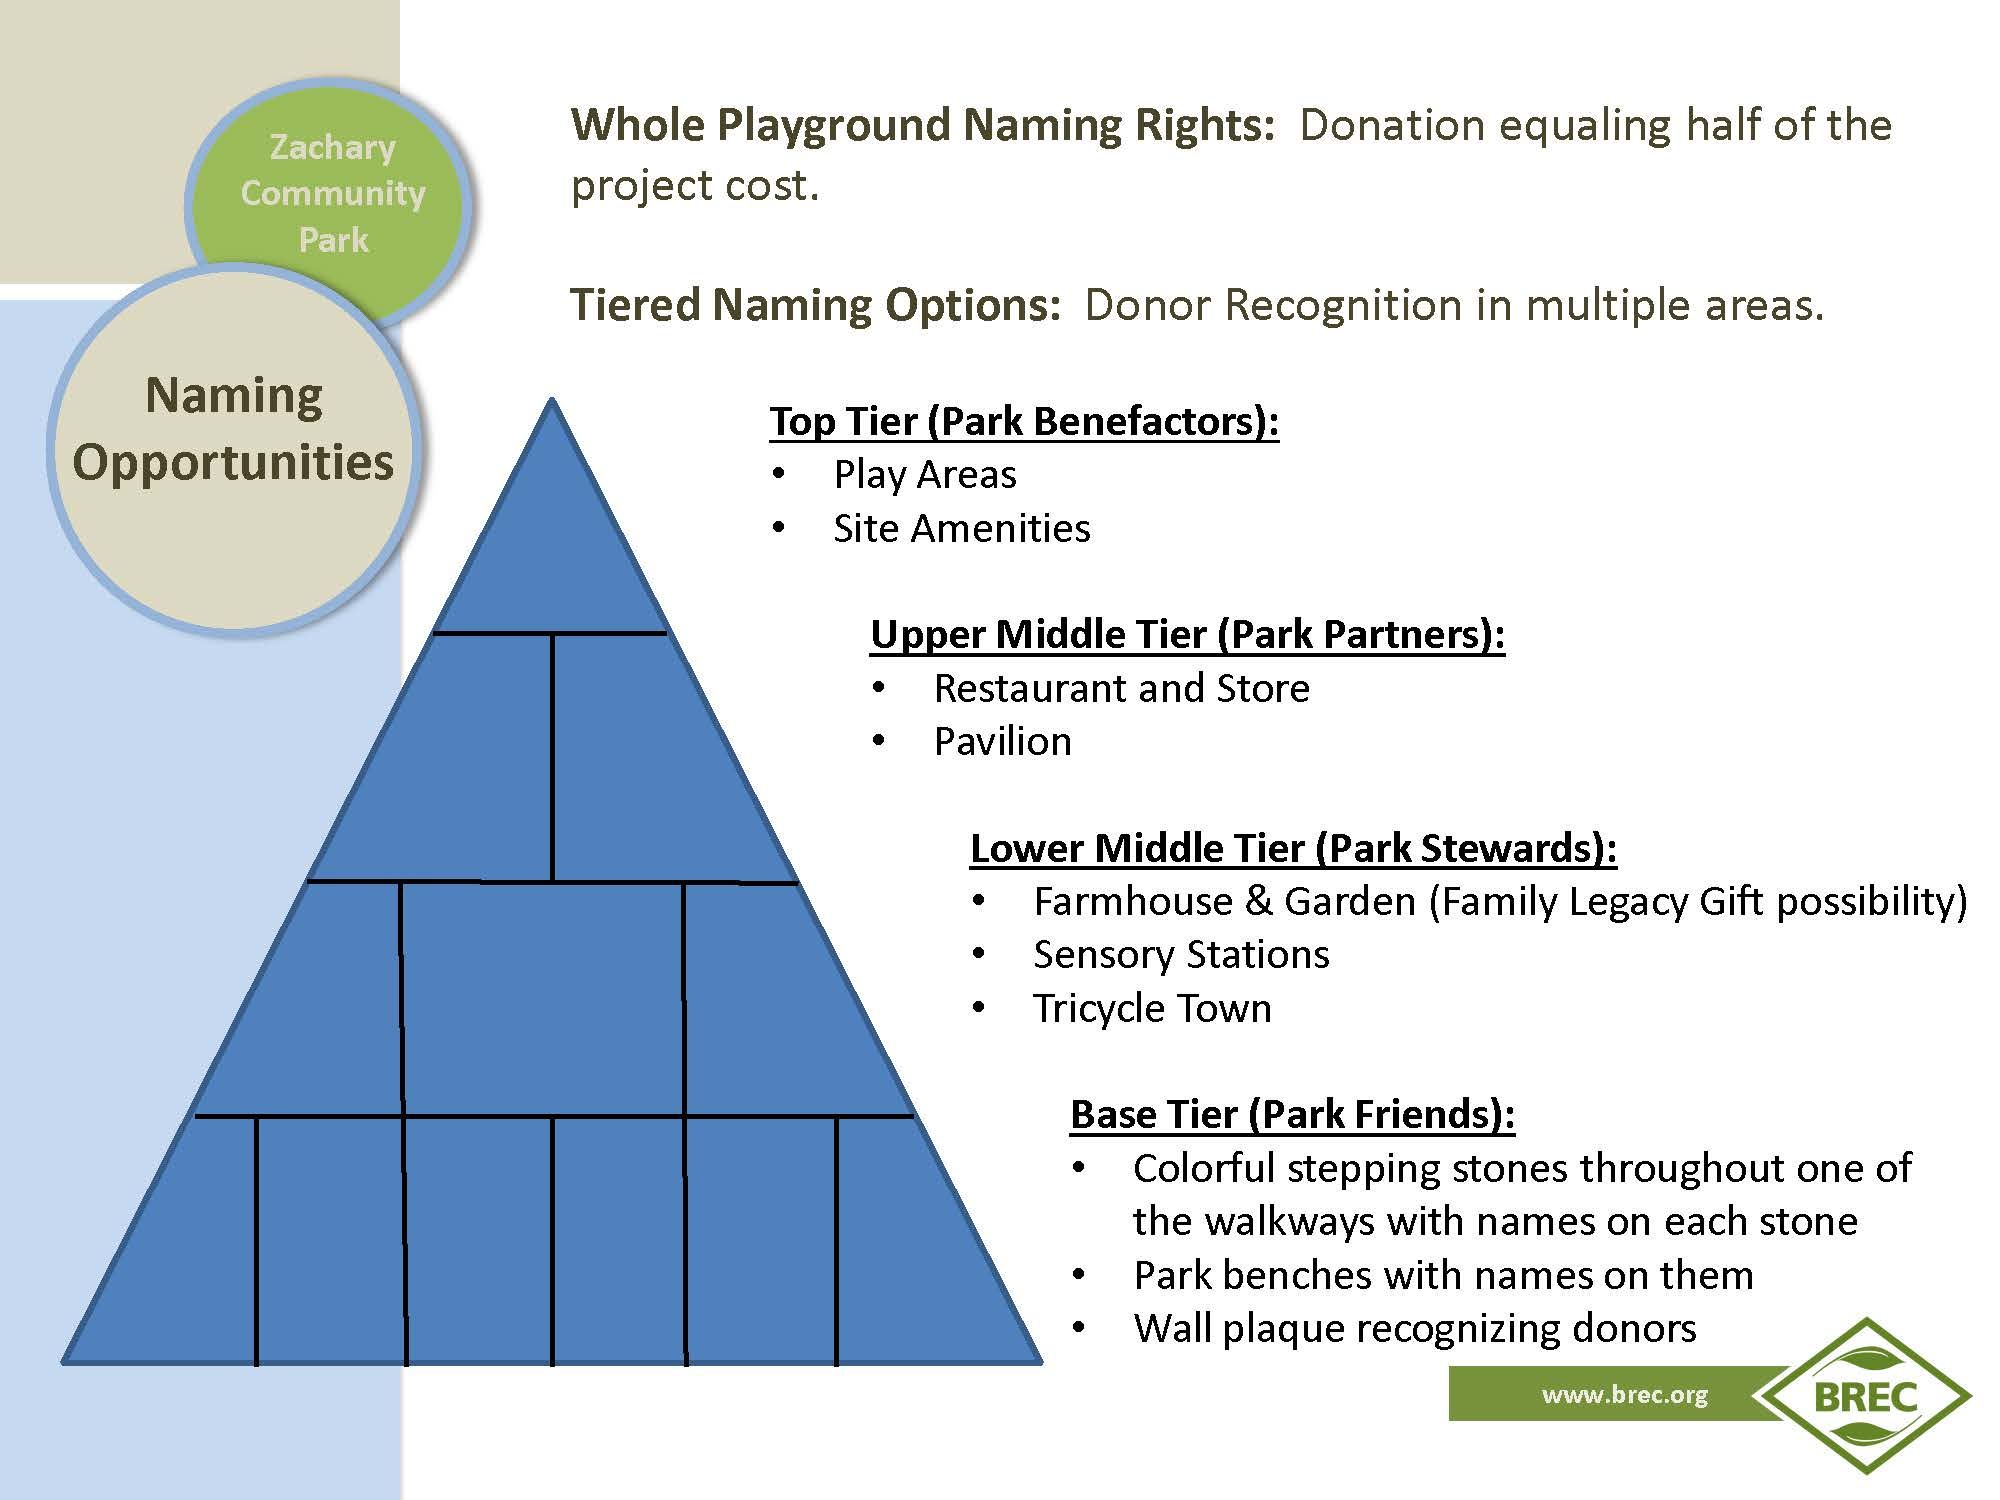 Zachary_PlaygroundPhaseII_Naming Opportunities_Page_03.jpg